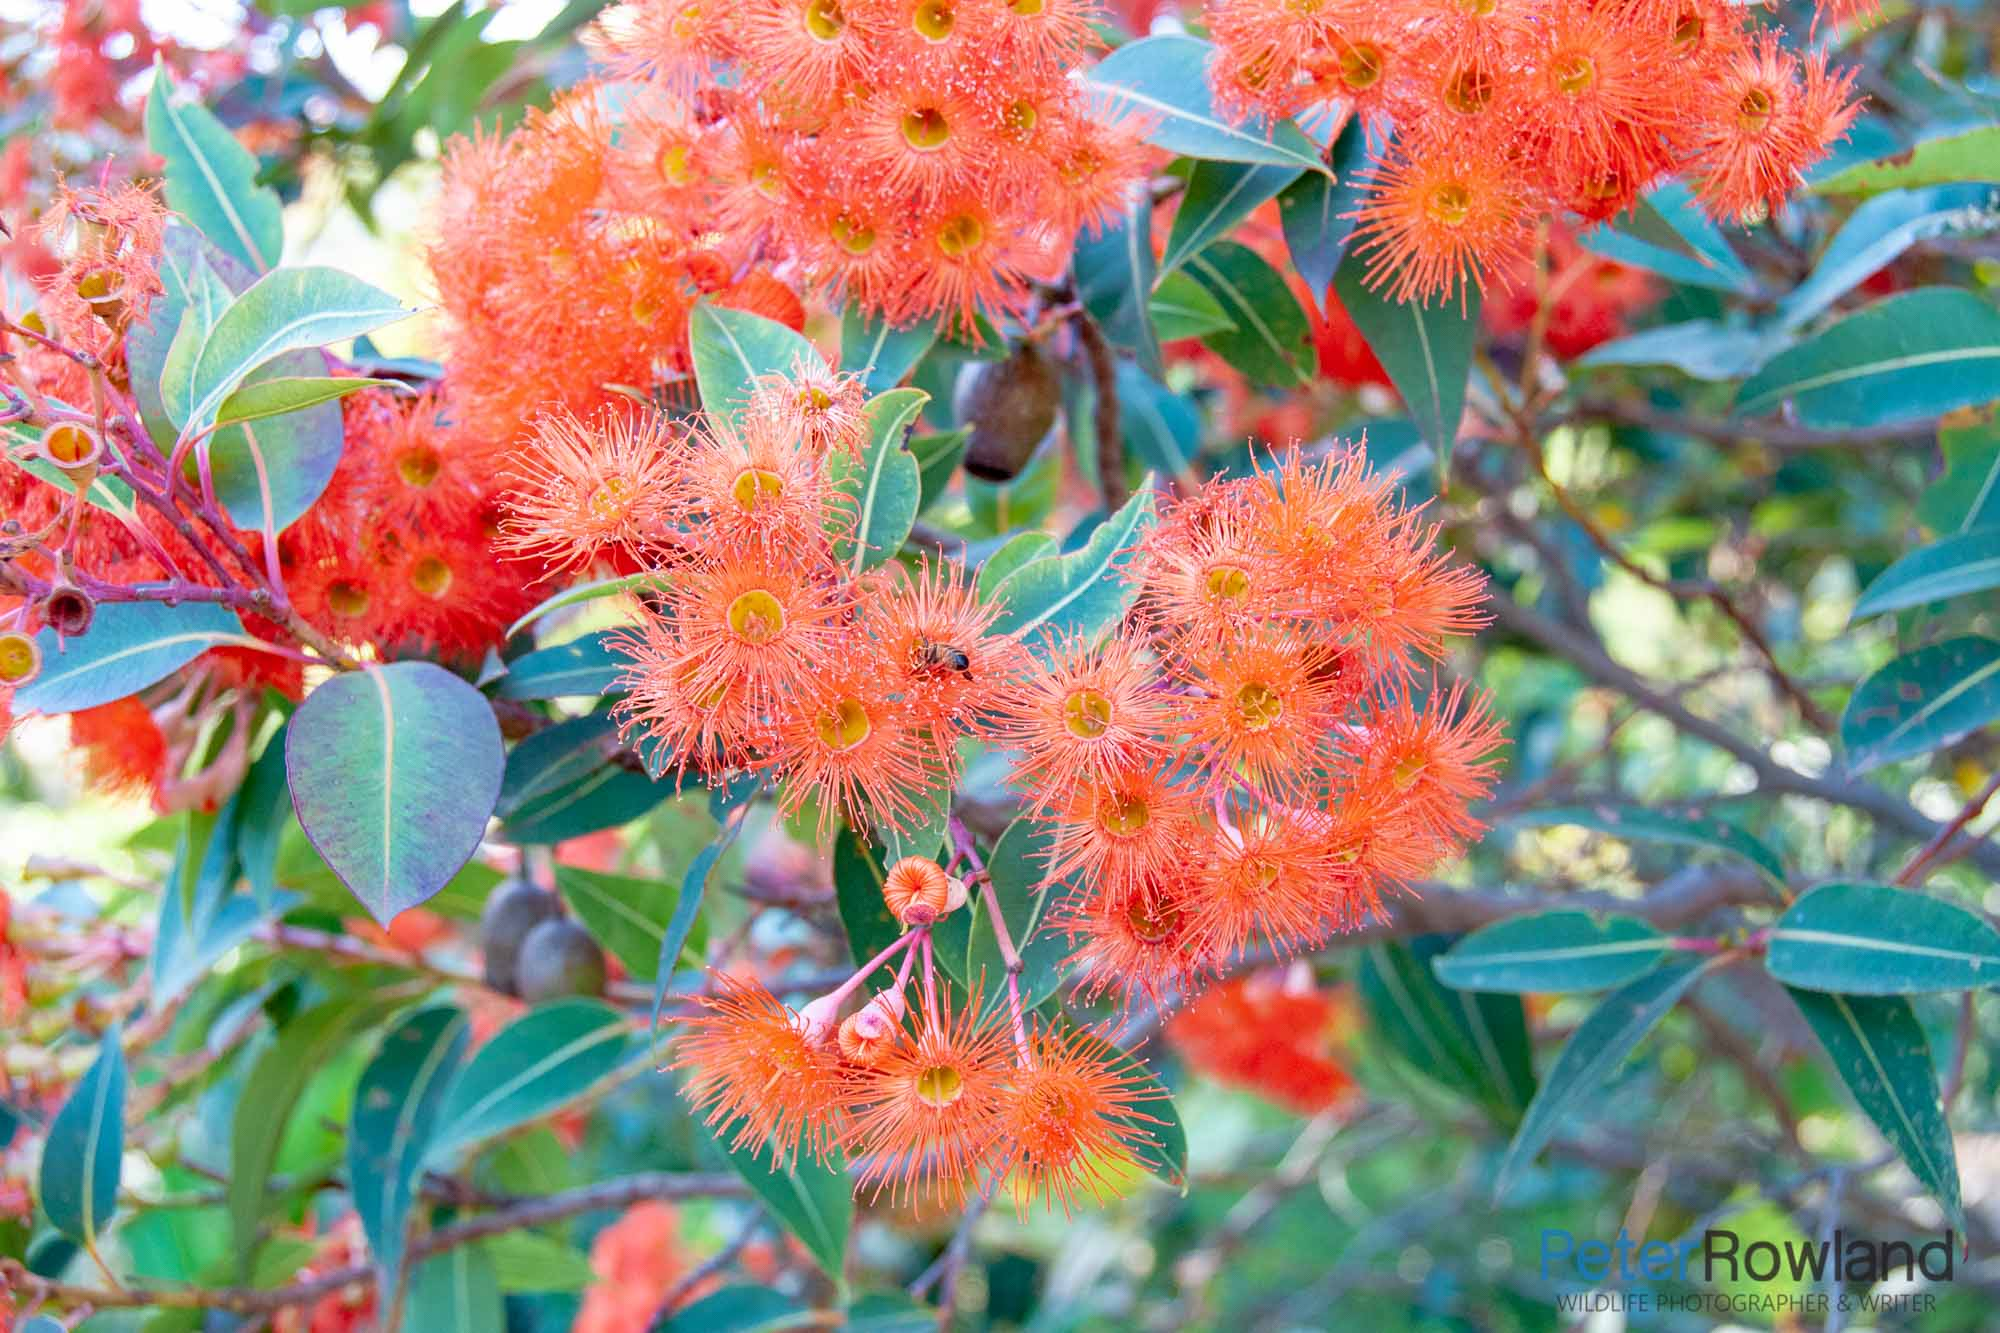 Close up of the flower blossoms on an albany Red Flowering Gum. [Photographed by Peter Rowland]